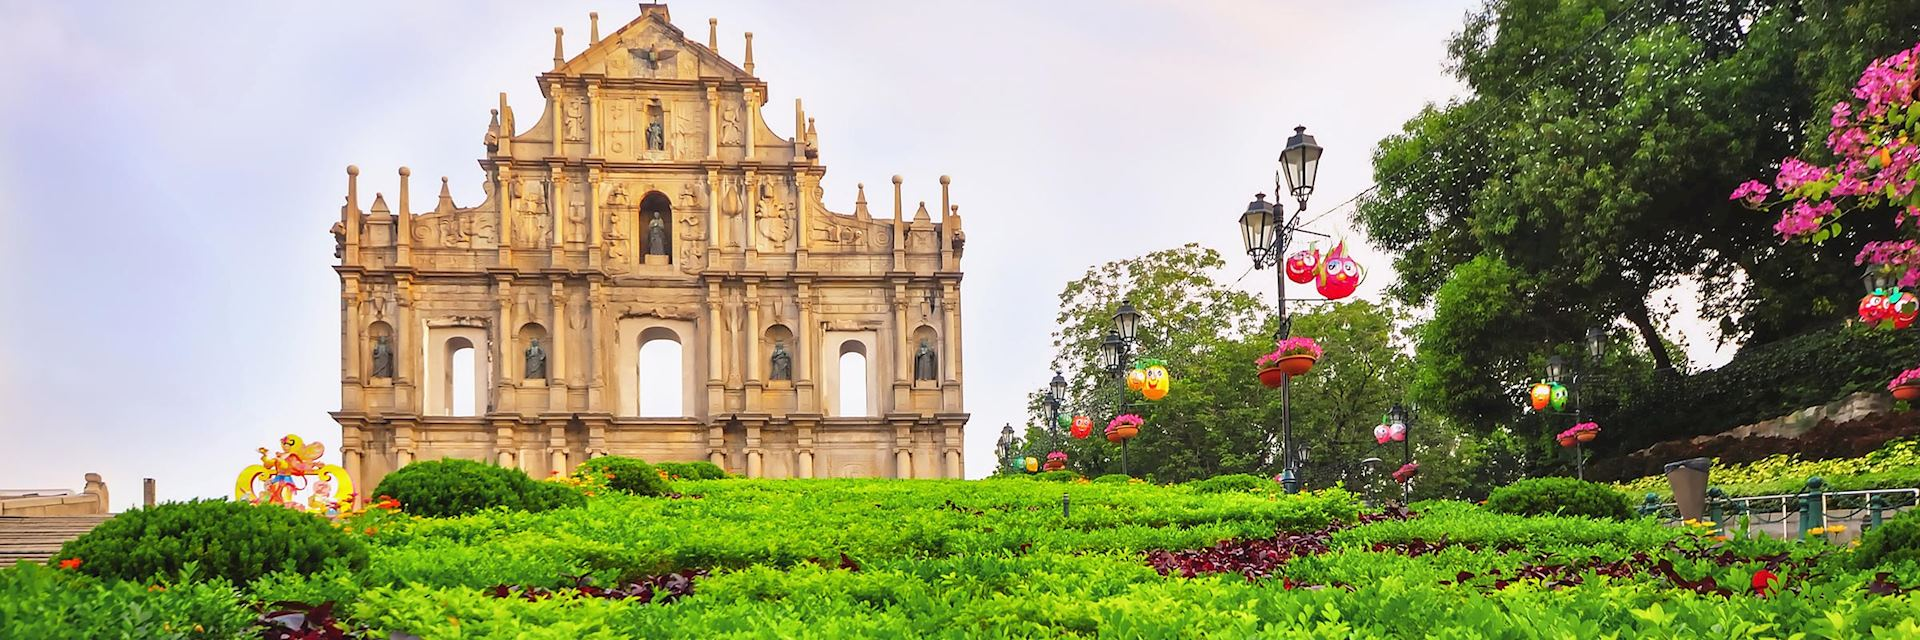 St Paul's Church ruins, Macau